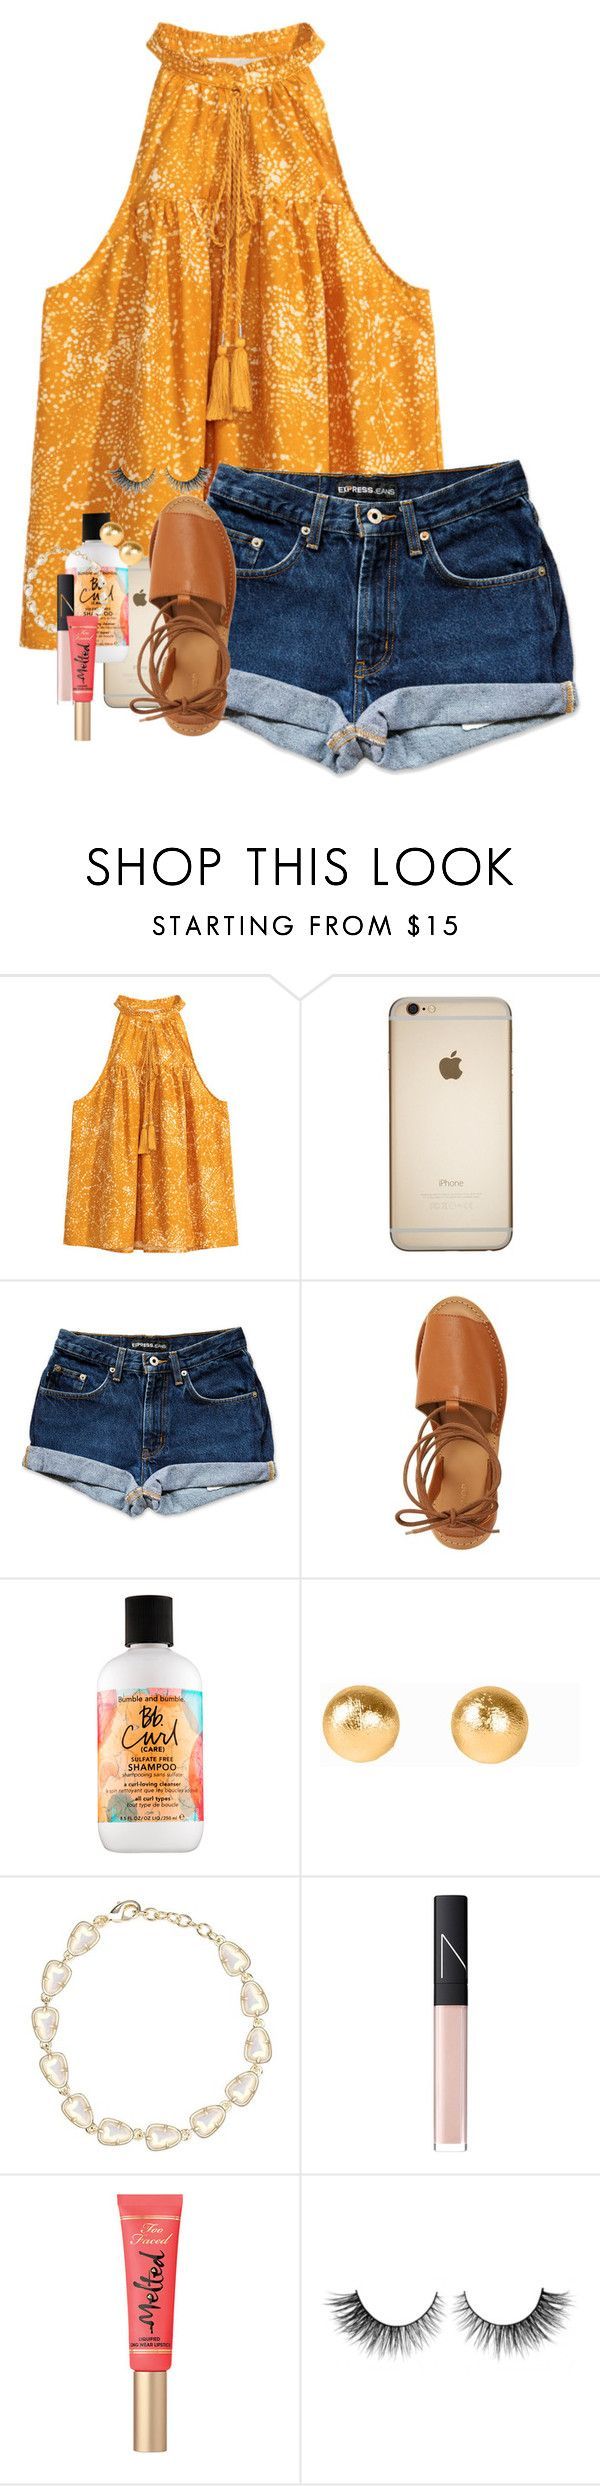 """""""Just got back from a firework show on the lake!❤️There were so many spiders on the boat though"""" by erinlmarkel ❤ liked on Polyvore featuring H&M, Topshop, Bumble and bumble, Snö Of Sweden, Kendra Scott, NARS Cosmetics, Too Faced Cosmetics and Rimini"""